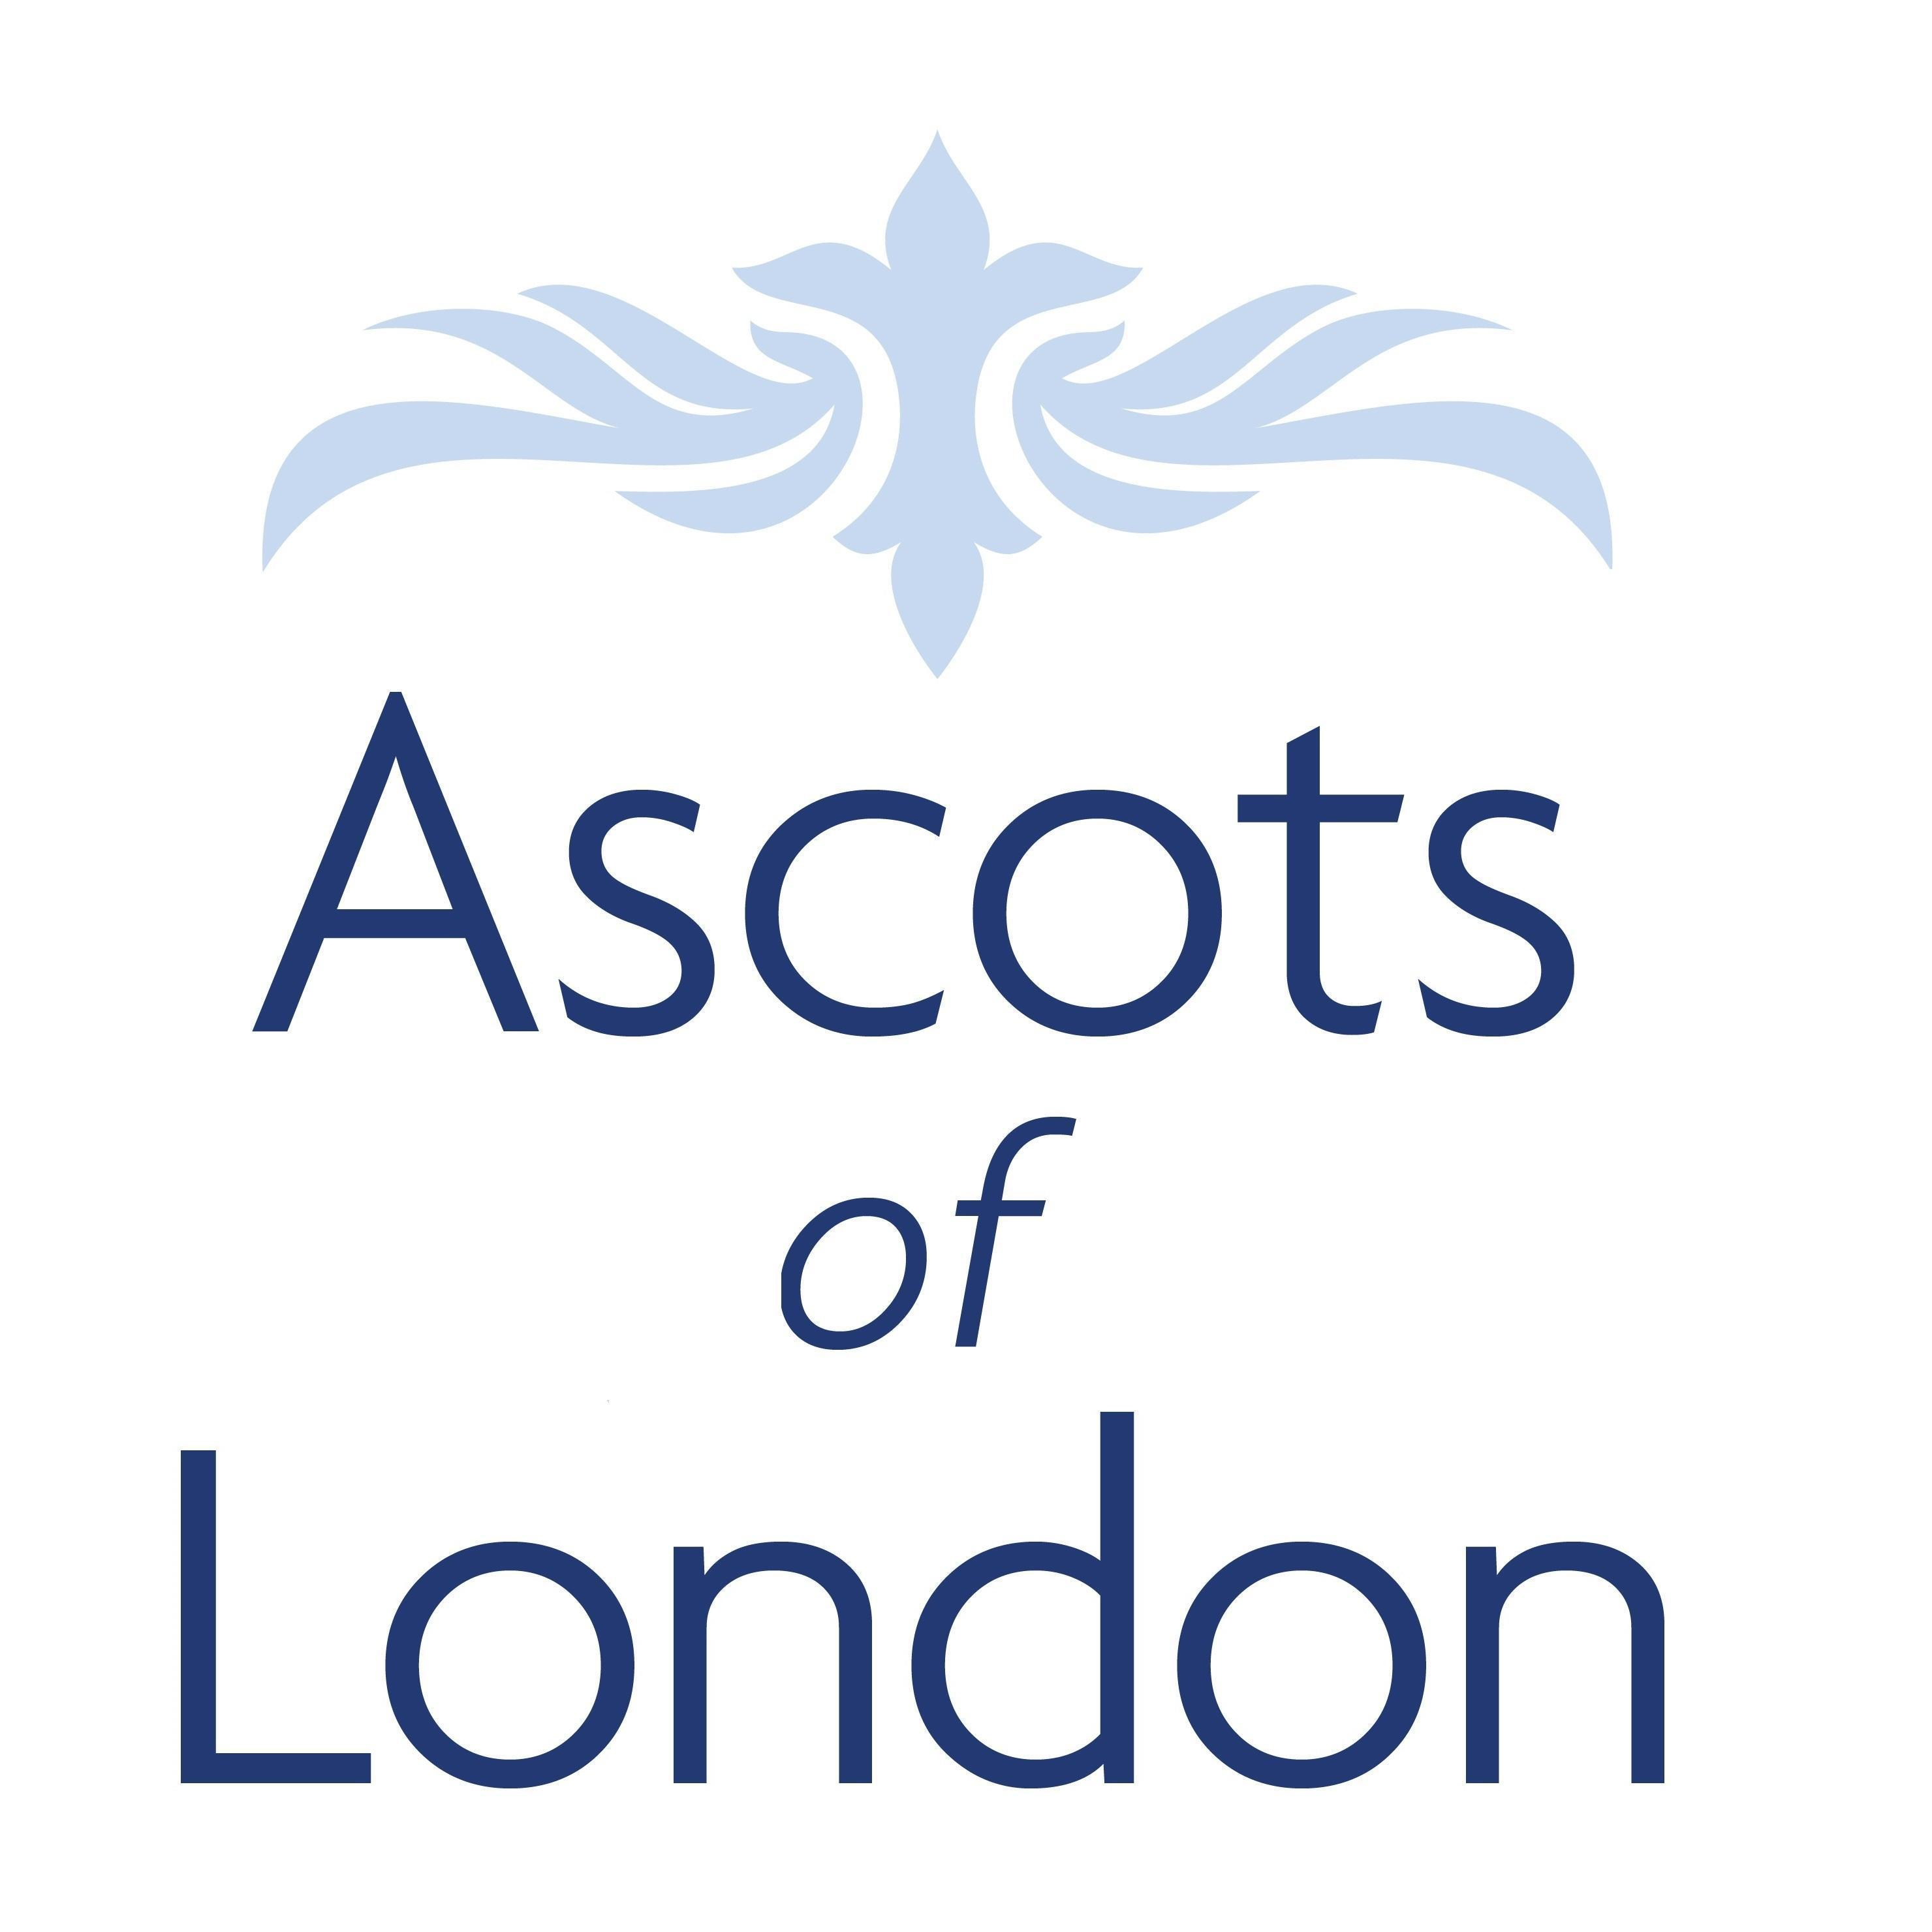 Ascots of London